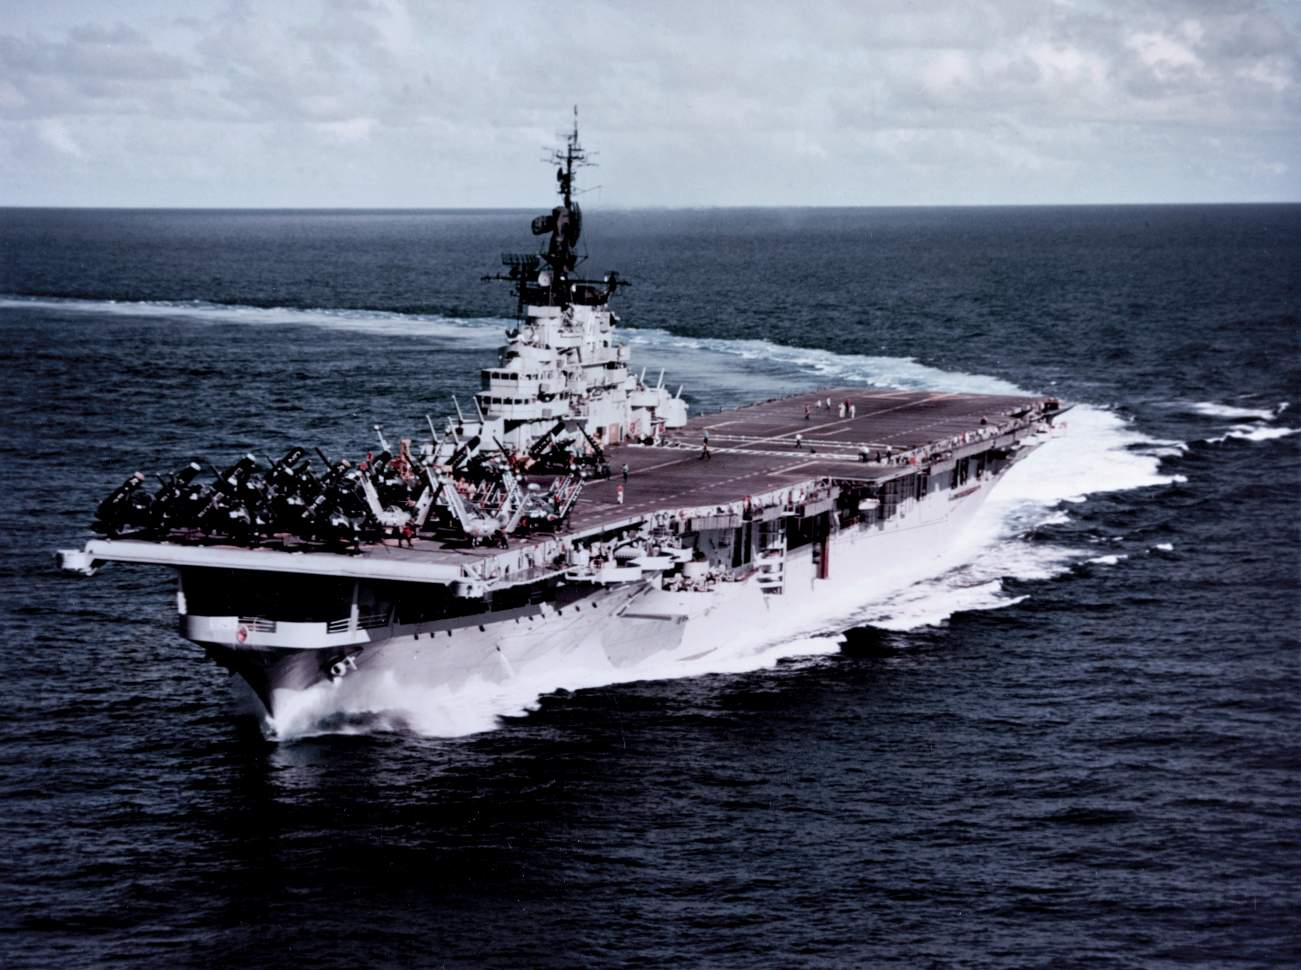 This Is Why No Essex-Class Aircraft Carriers Were Lost In World War II